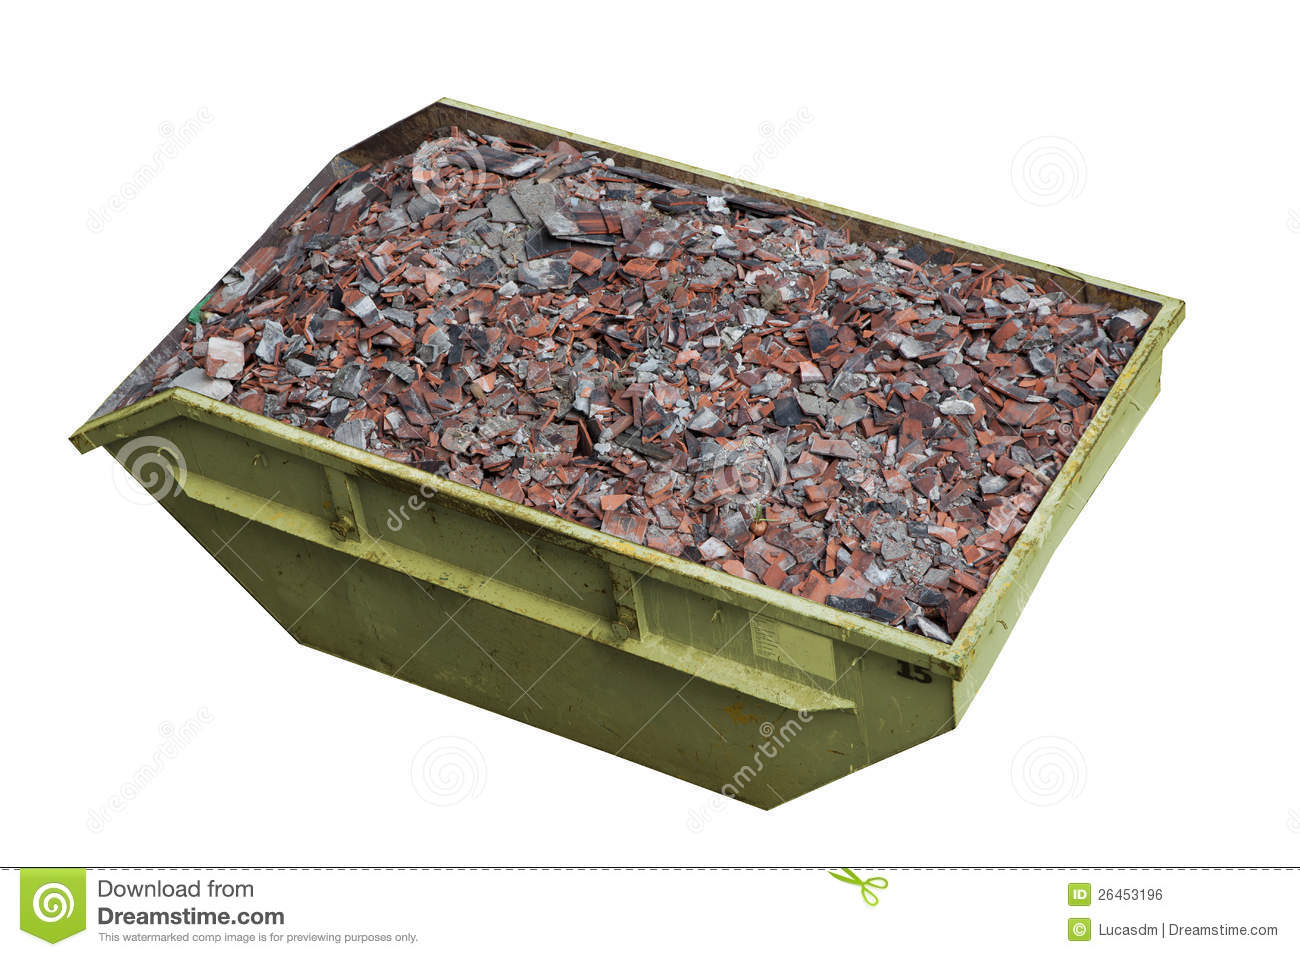 A Container Full Of Construction Debris Stock Photo